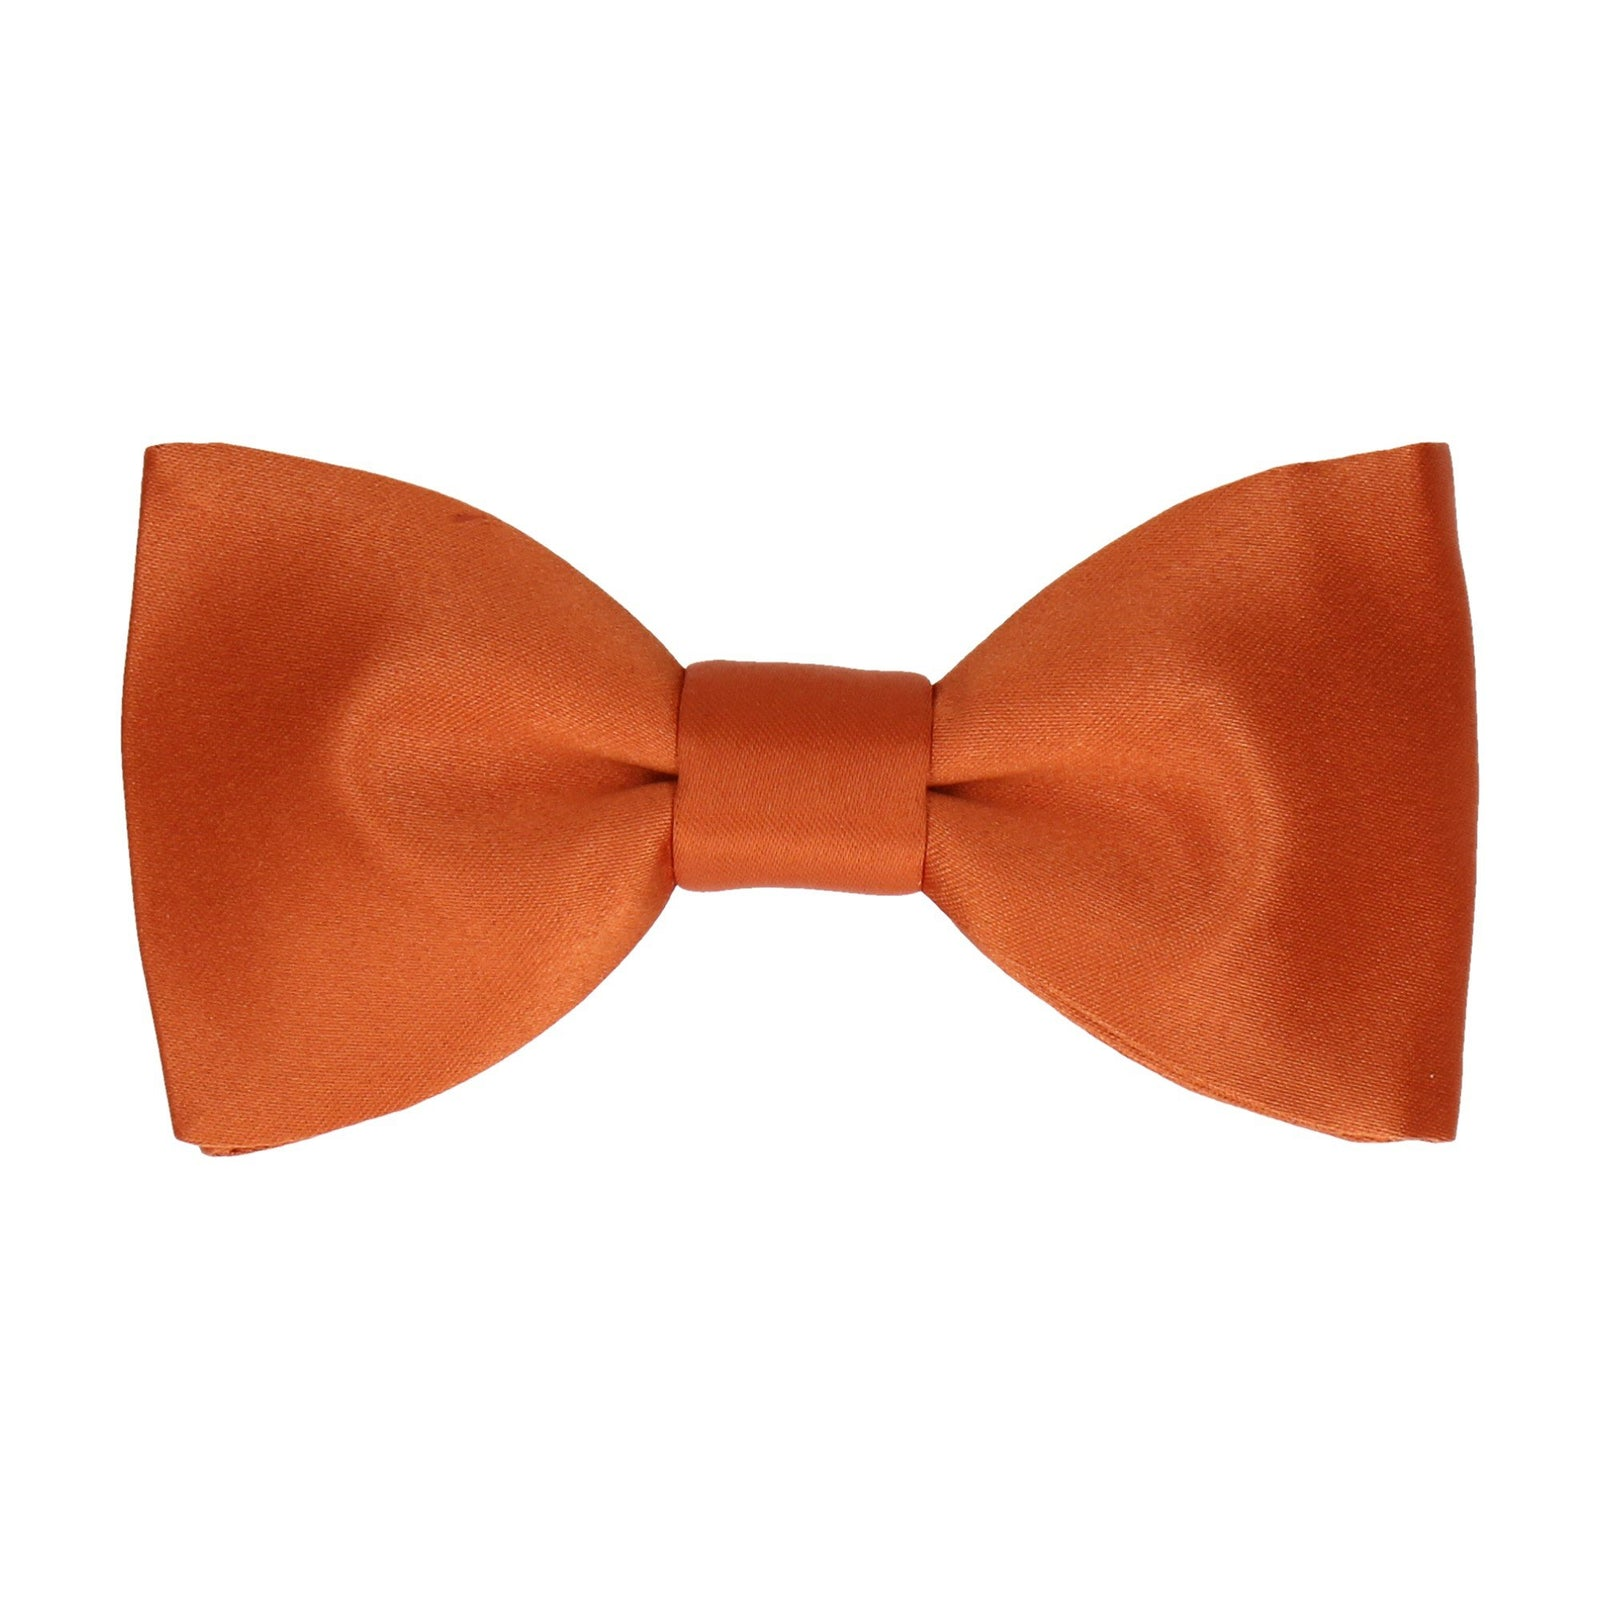 Plain Solid Copper Orange Satin Bow Tie